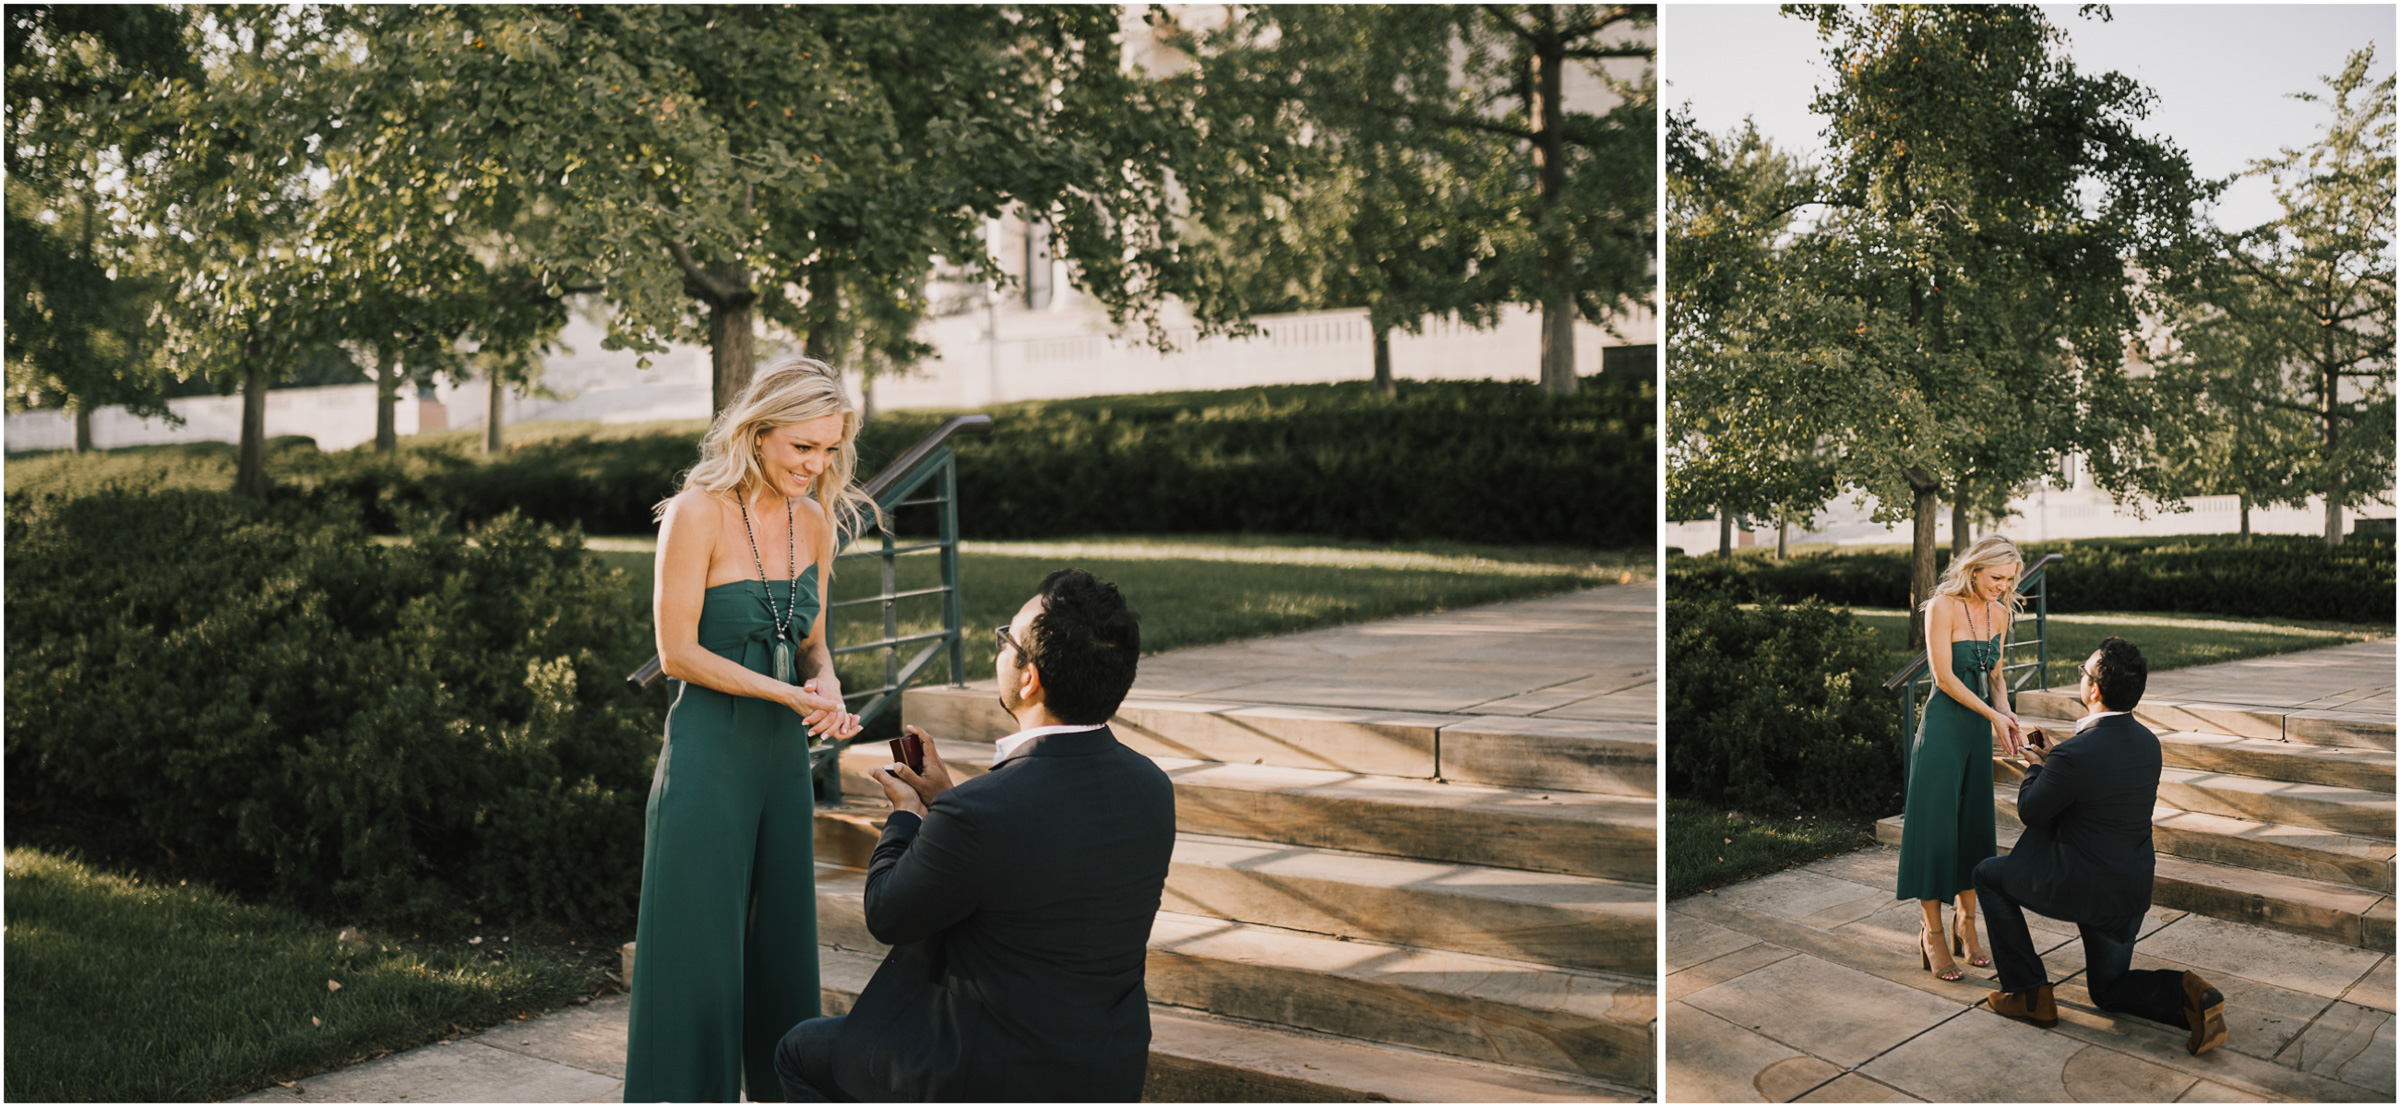 alyssa barletter photography how he asked proposal nelson atkins museum kansas city missouri she said yes-4.jpg